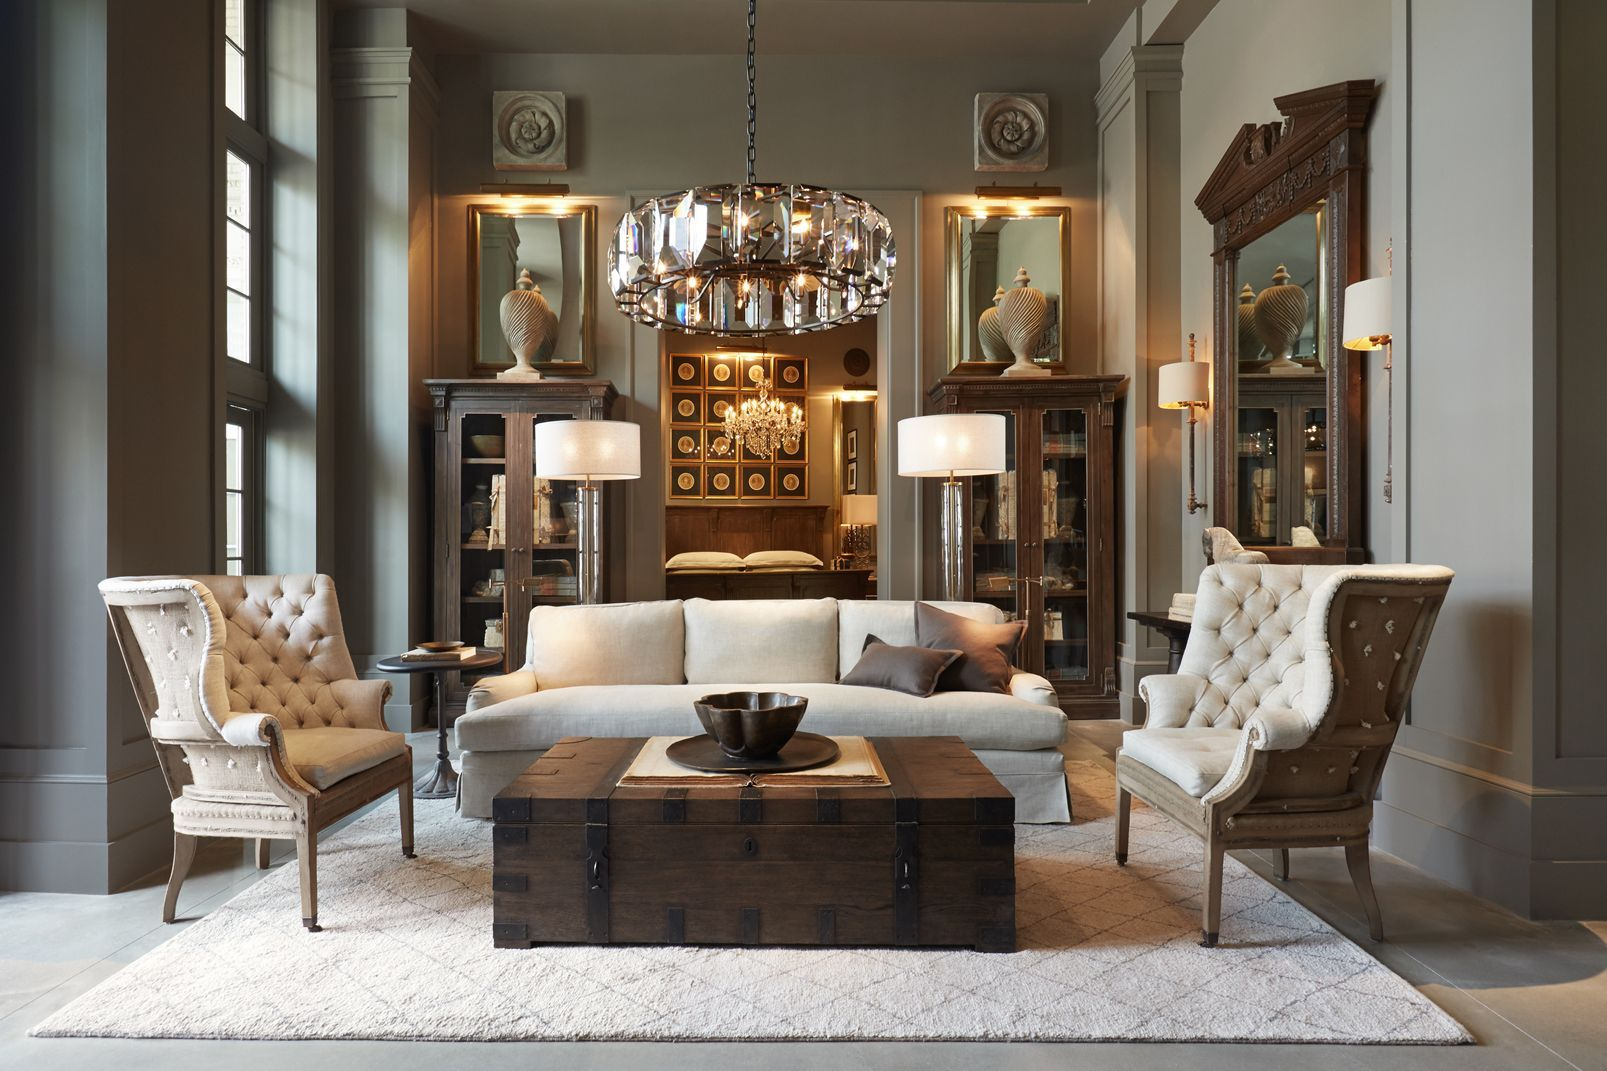 The 5 most expensive furniture brands in the world home for Hotel home decor